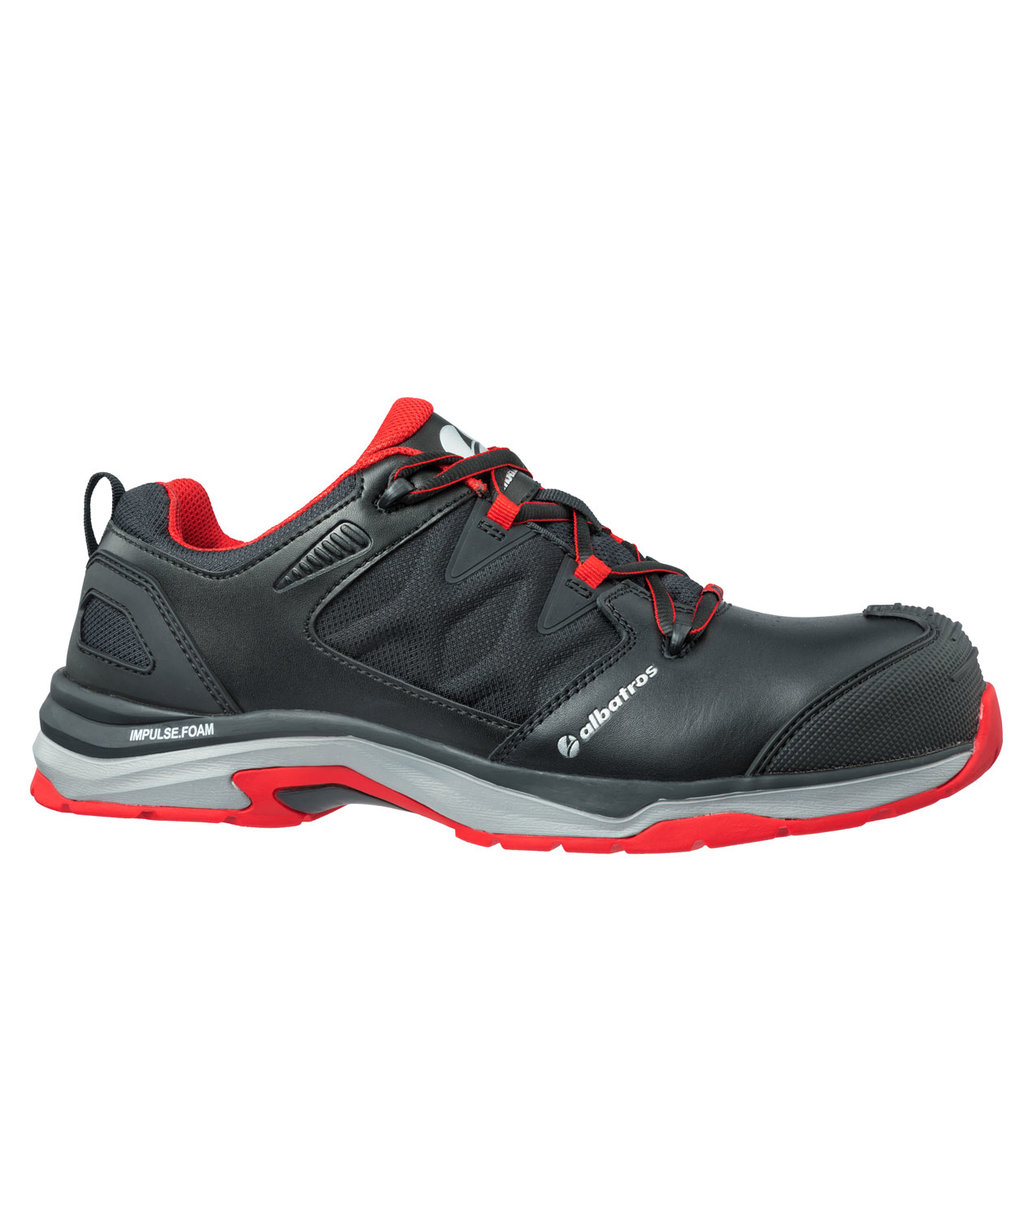 Albatros Ultratrail Black Low women's safety shoes S3, Black/Red